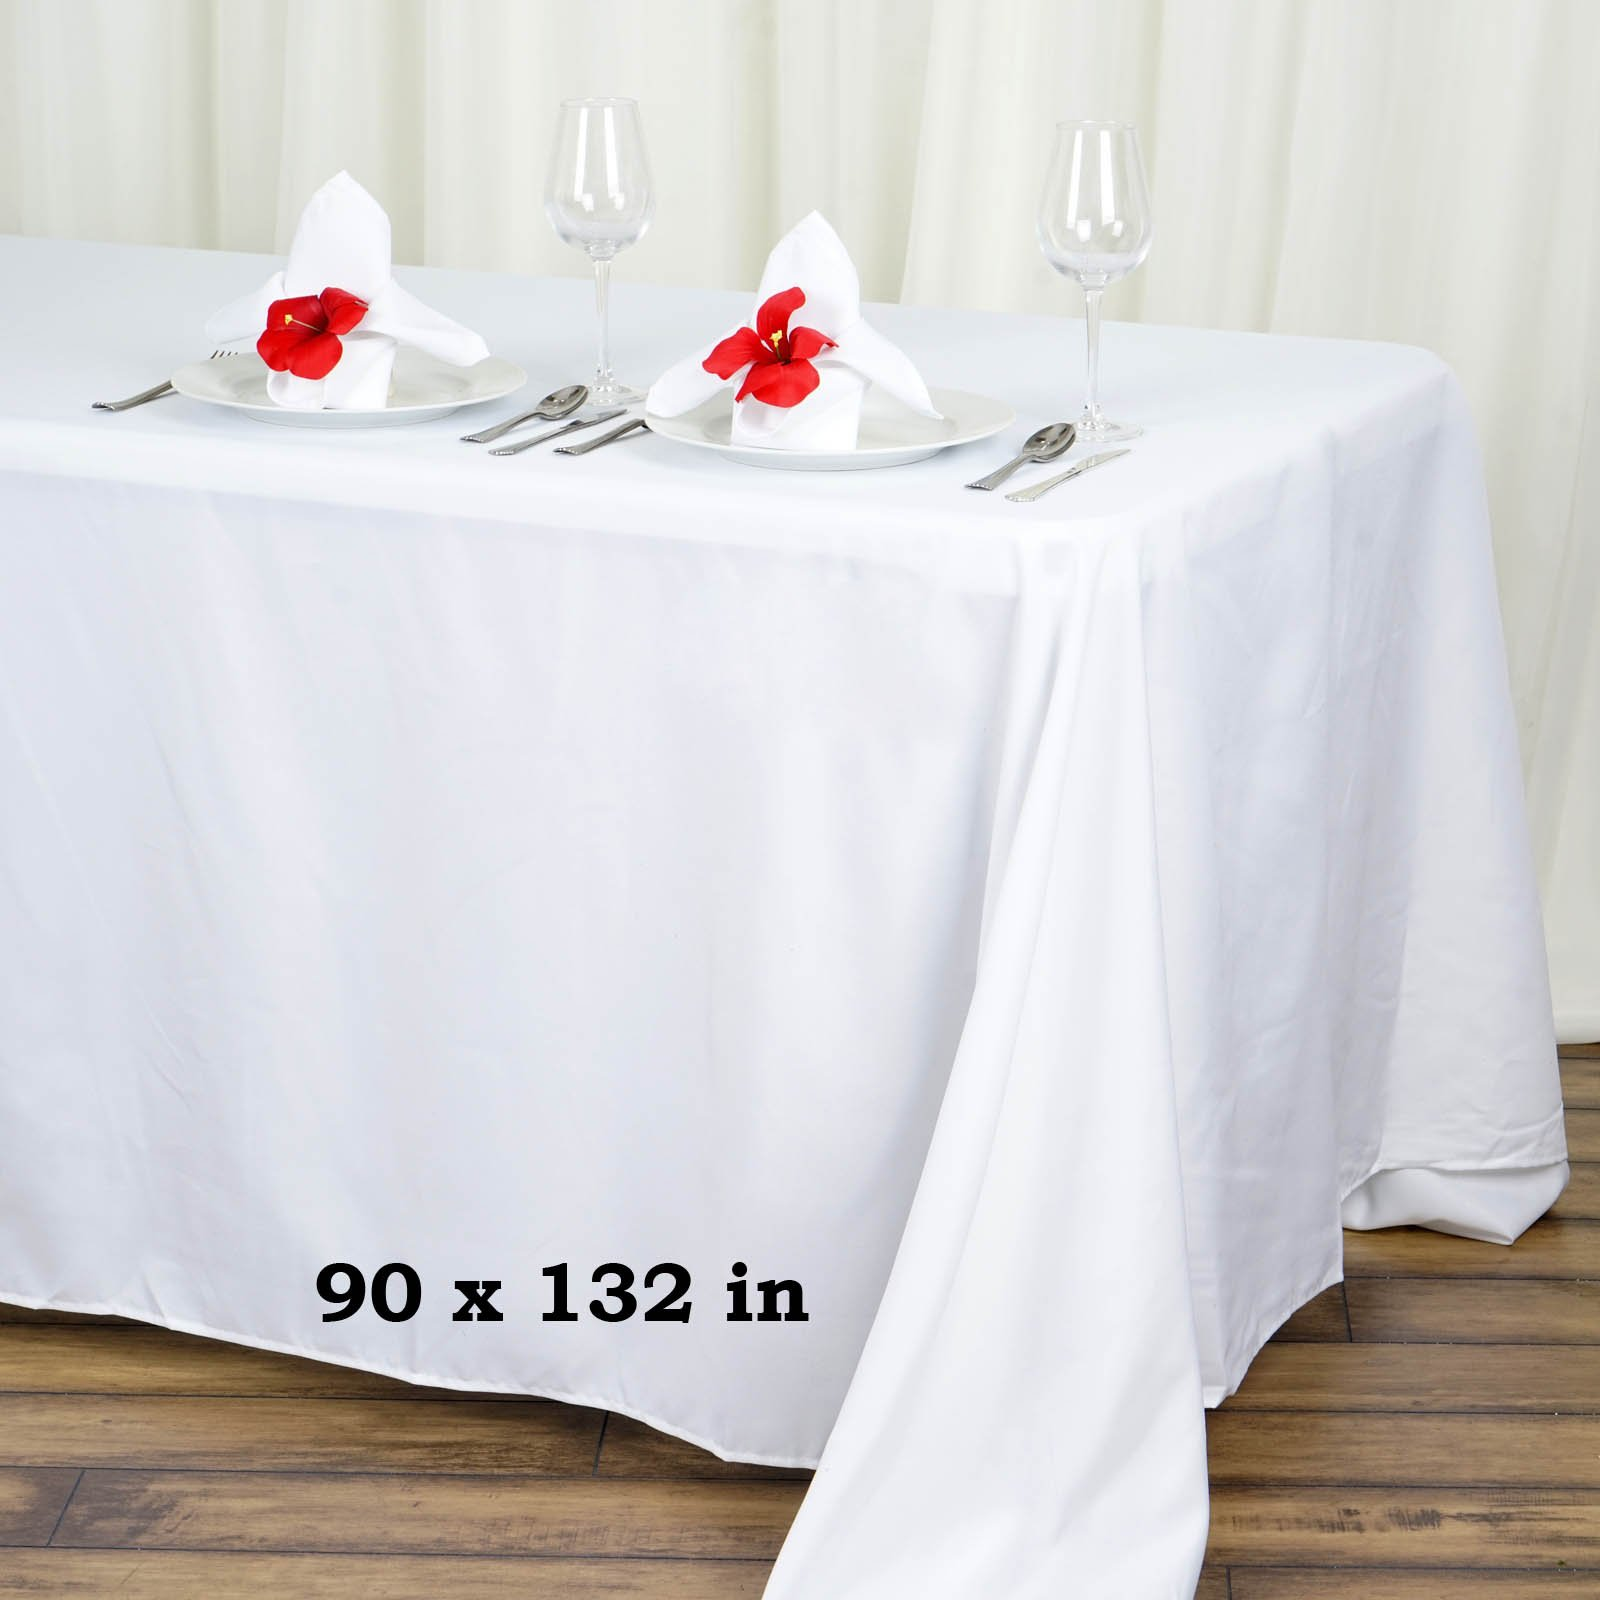 TC Tanu Collections Rectangle Tablecloth - 90 x 132 Inch - White Rectangular Table Cloth for 6 Foot Table in Washable Polyester - Buffet Table, Parties, Holiday Dinner, Wedding & More (Pack of 10) by LinenTablecloth